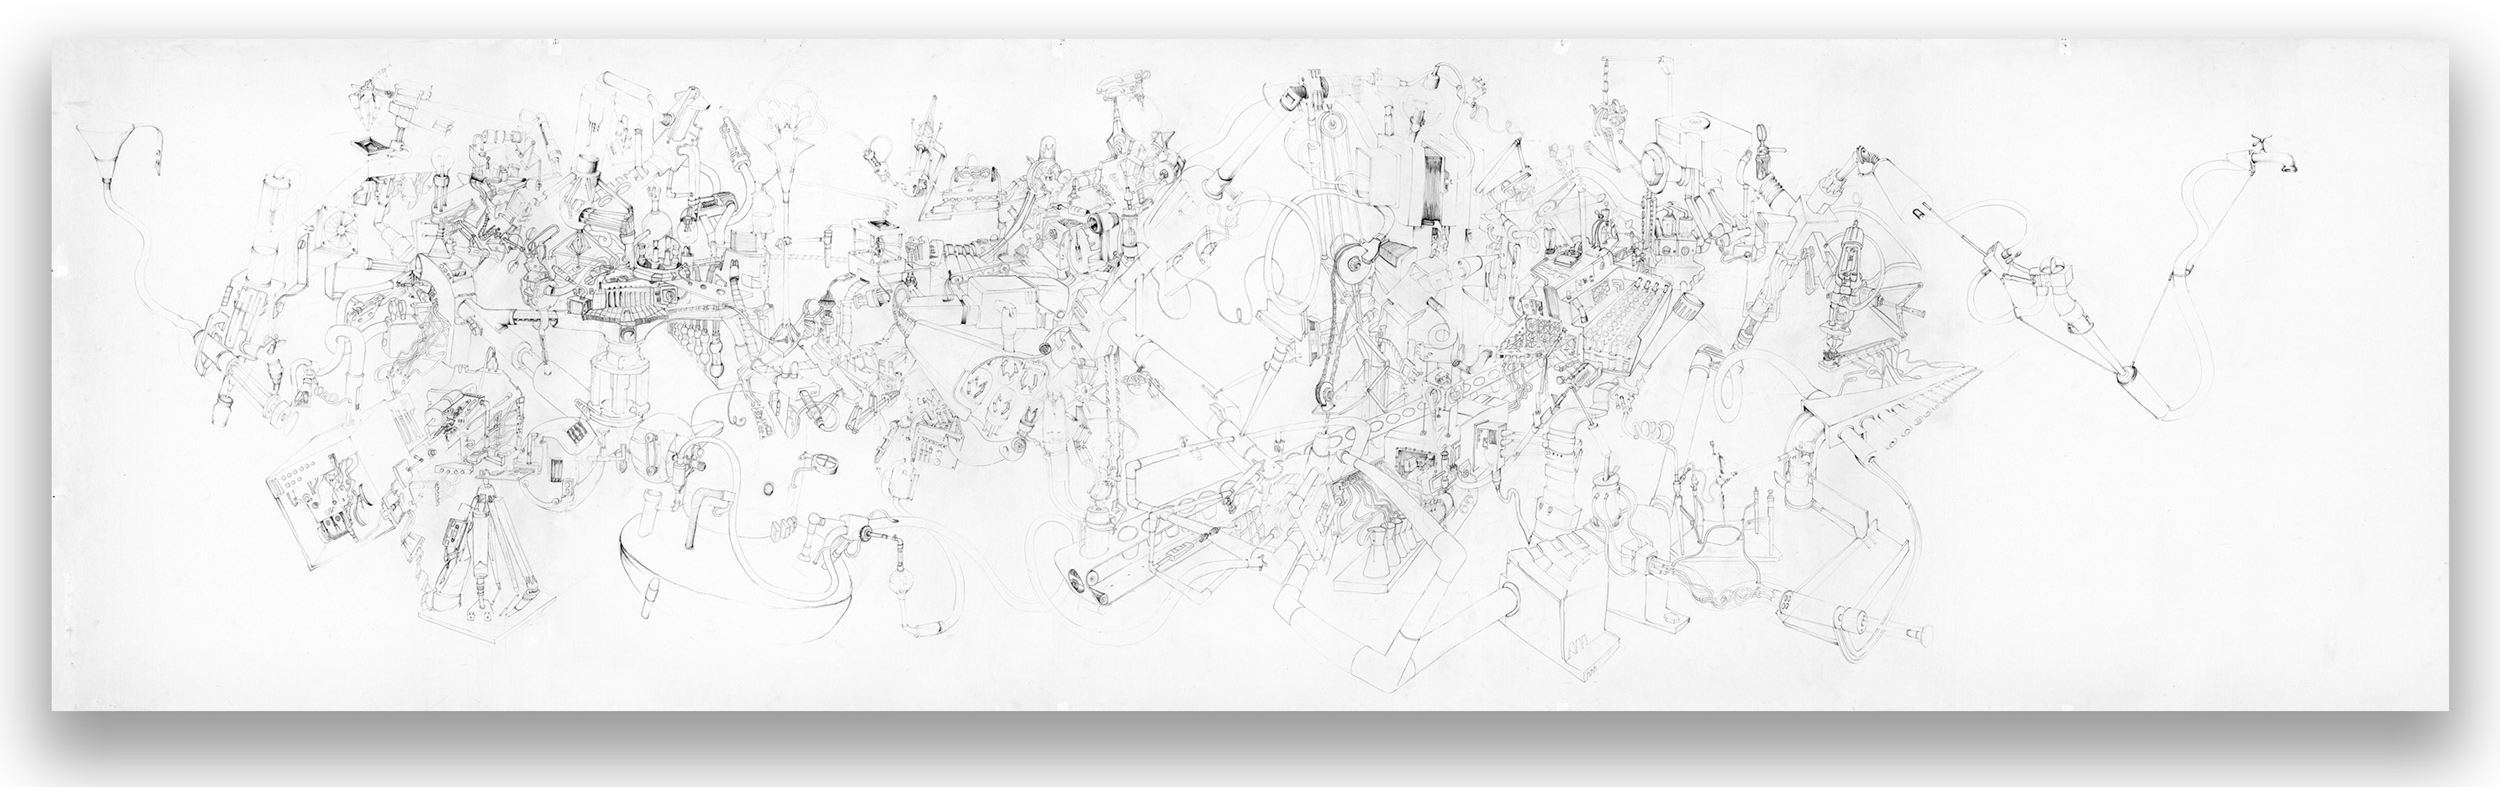 TM550; 550 x 150 cm; pencil drawing; 2010